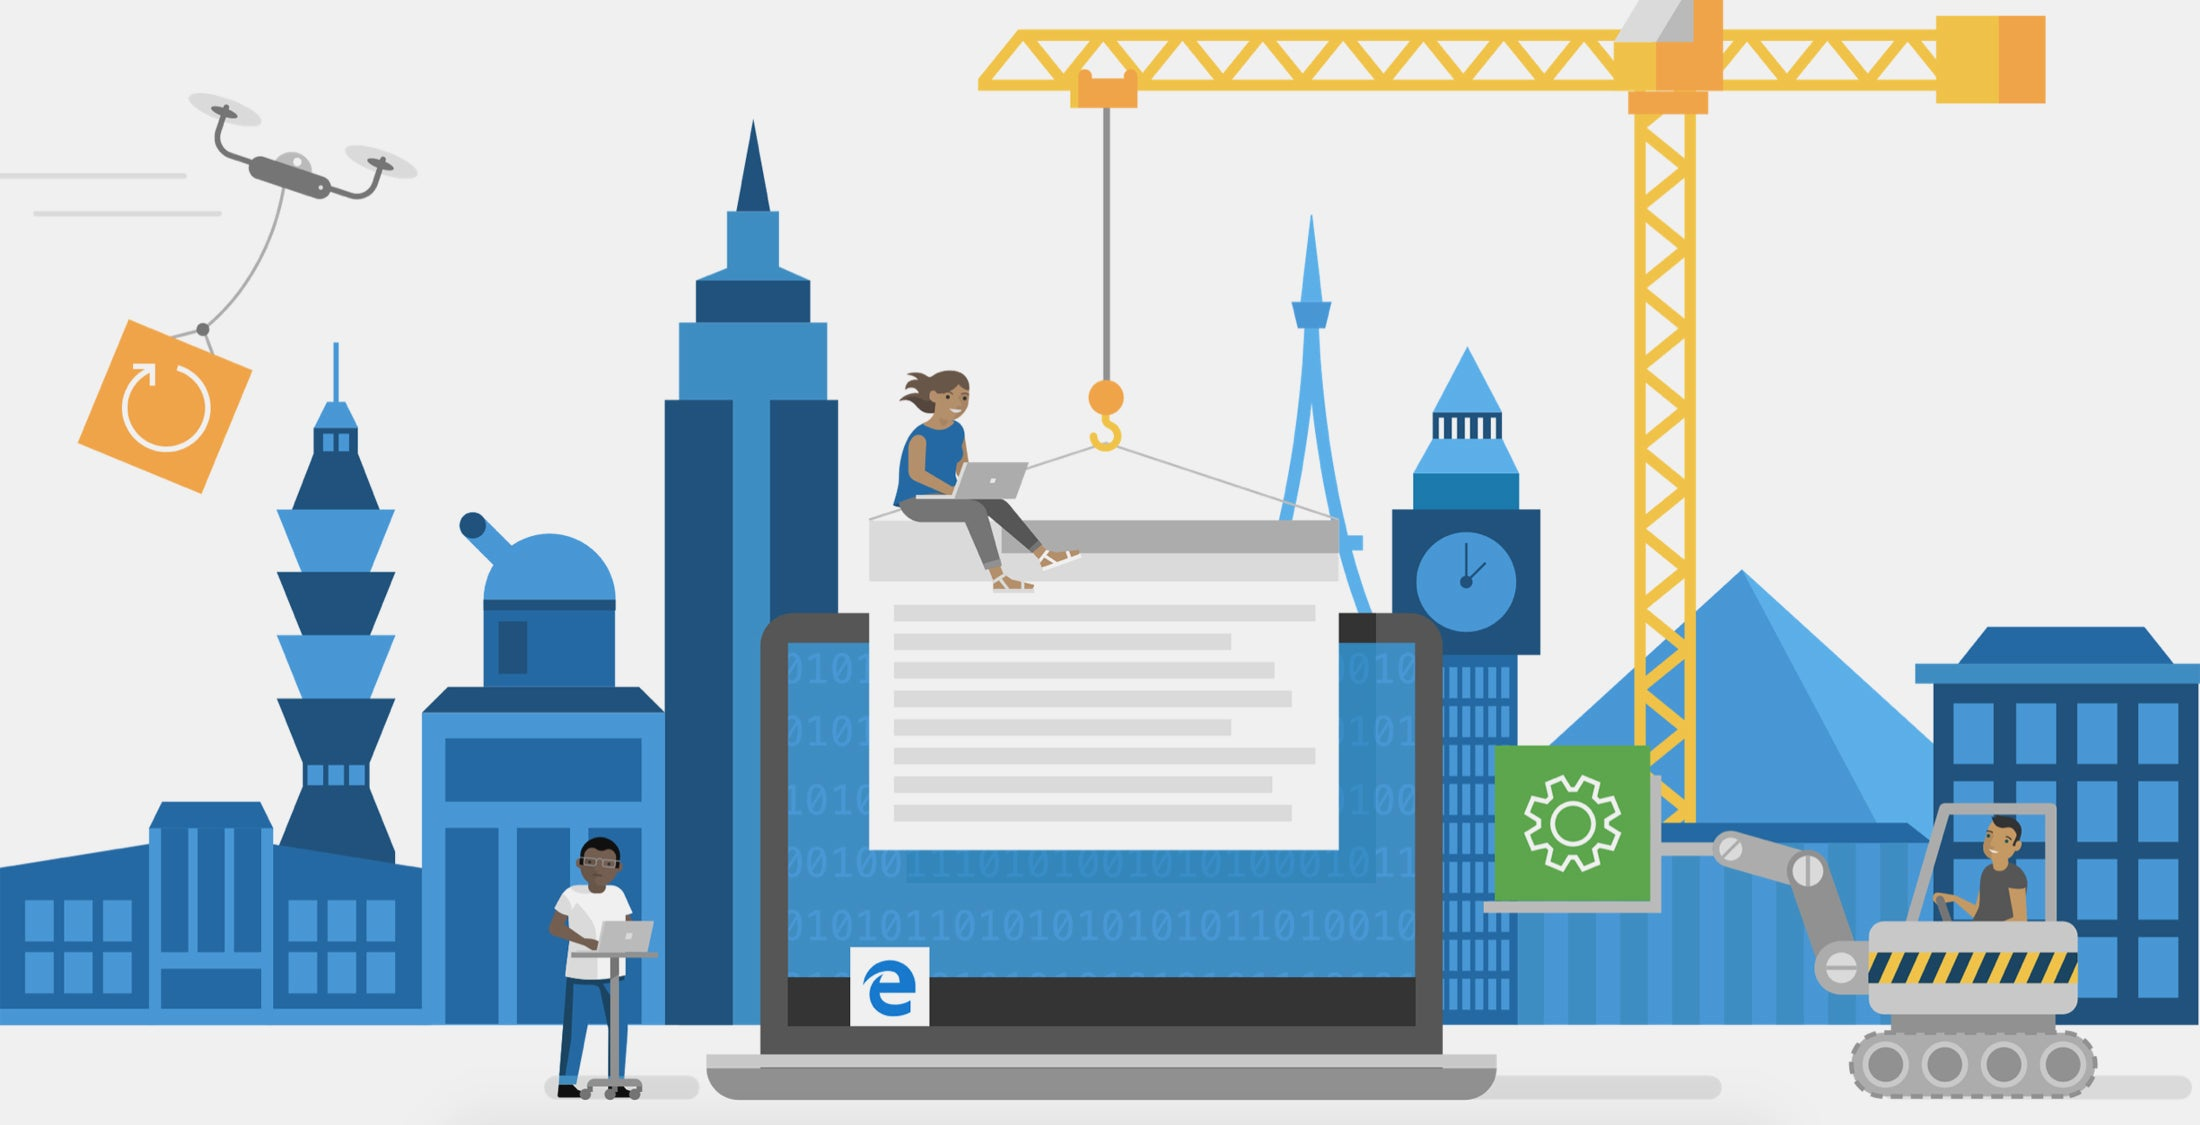 What's new in Microsoft Edge?